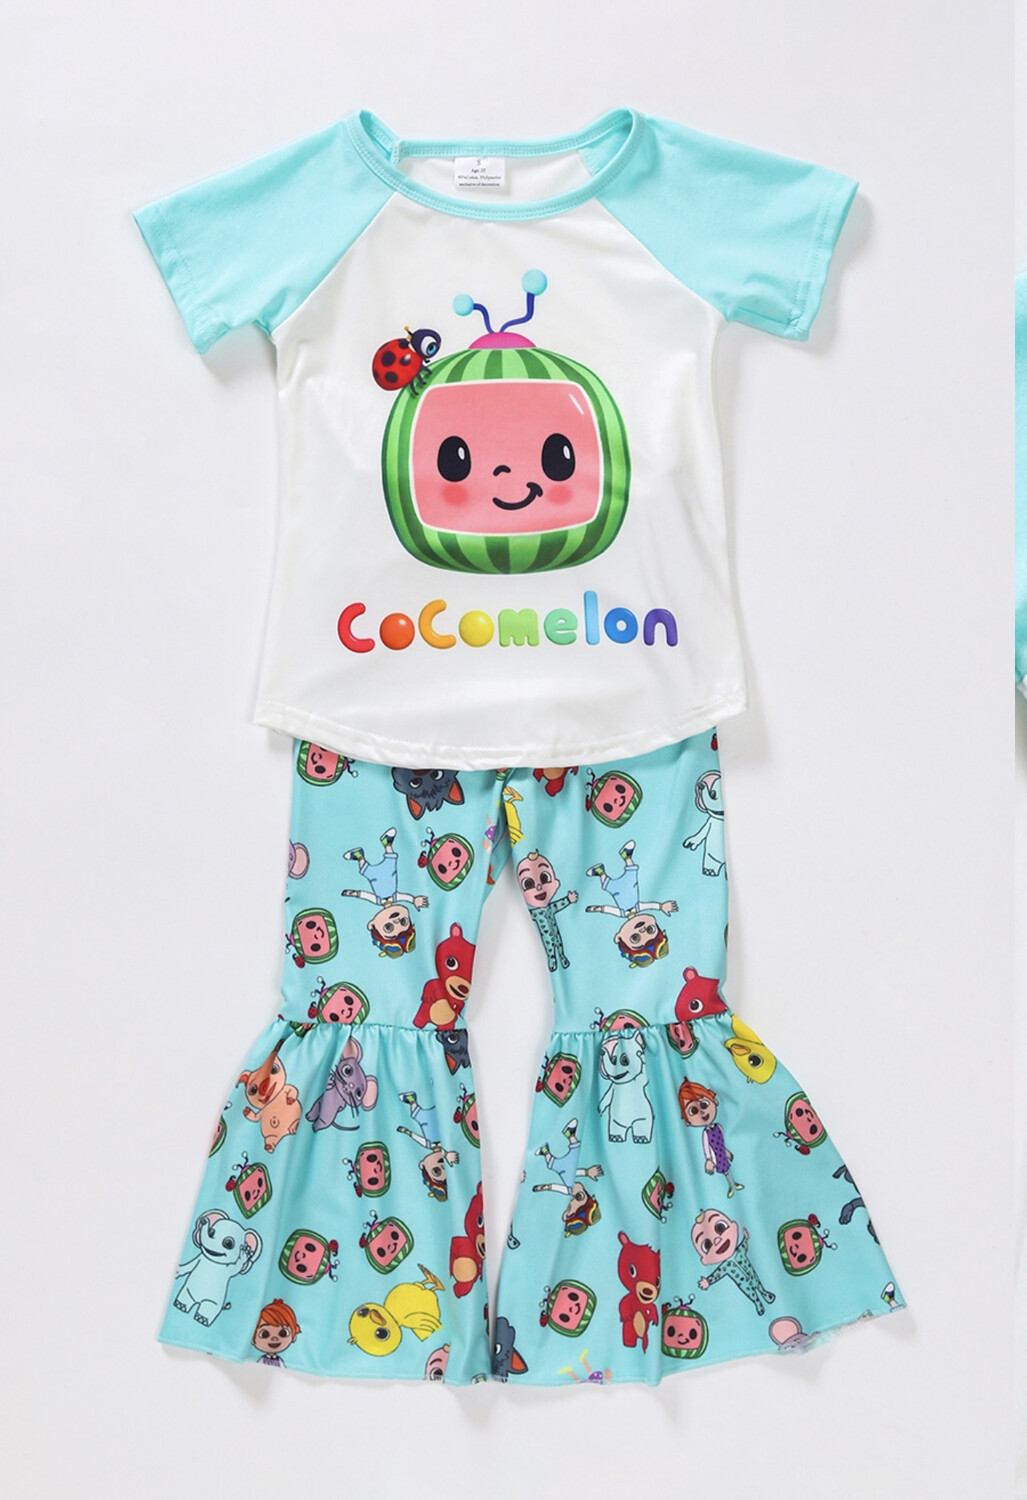 Cocomelon Set